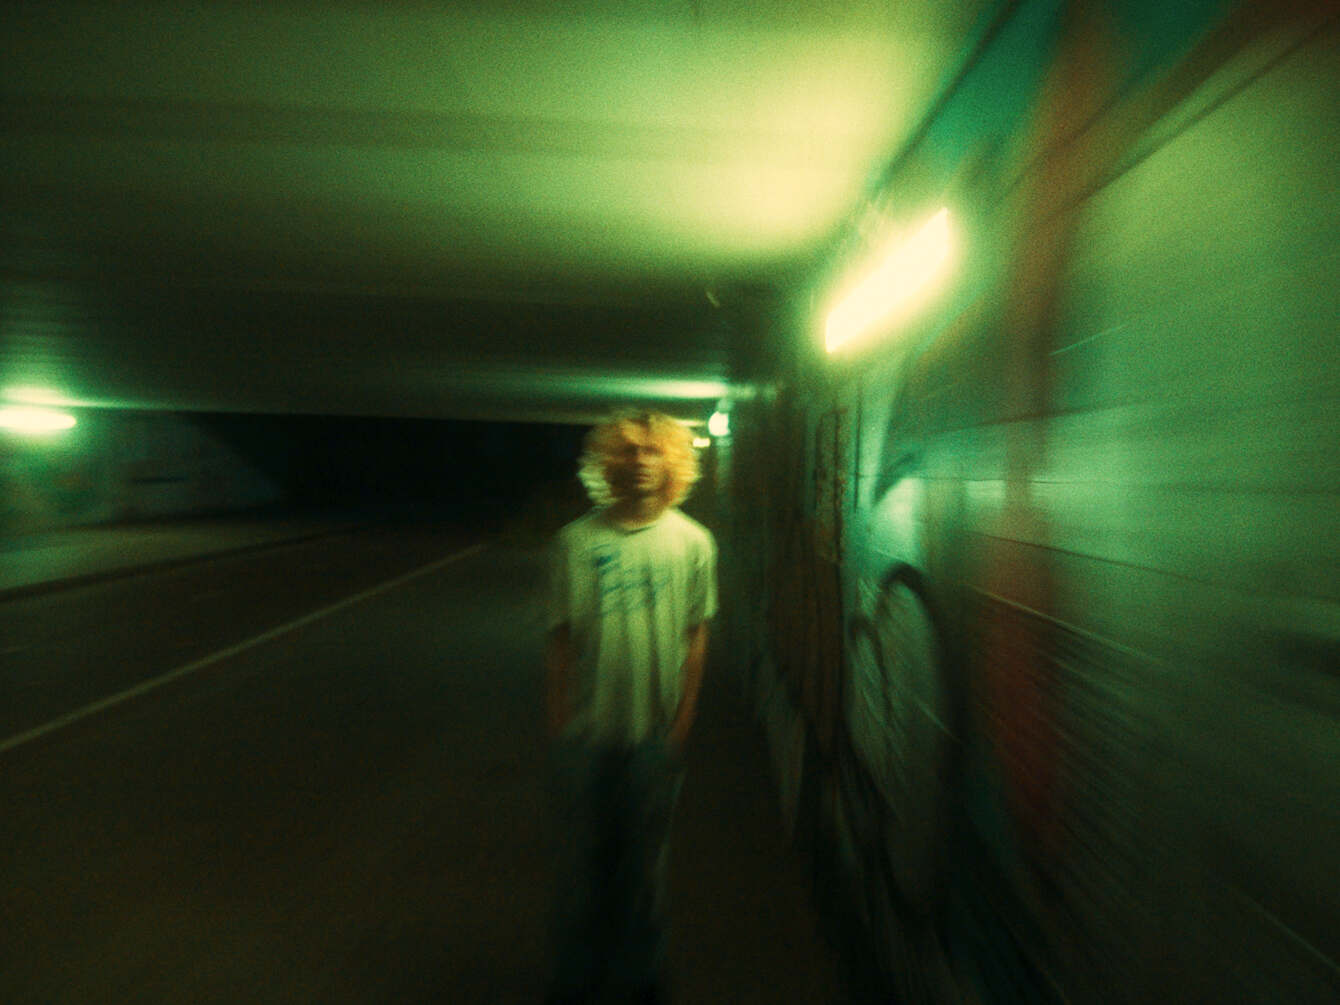 Still from Incendios. One of the two boys, played by Dmitri, is standing in a tunnel with graffiti on the wall. The shot is very blurry, as if it's in motion.